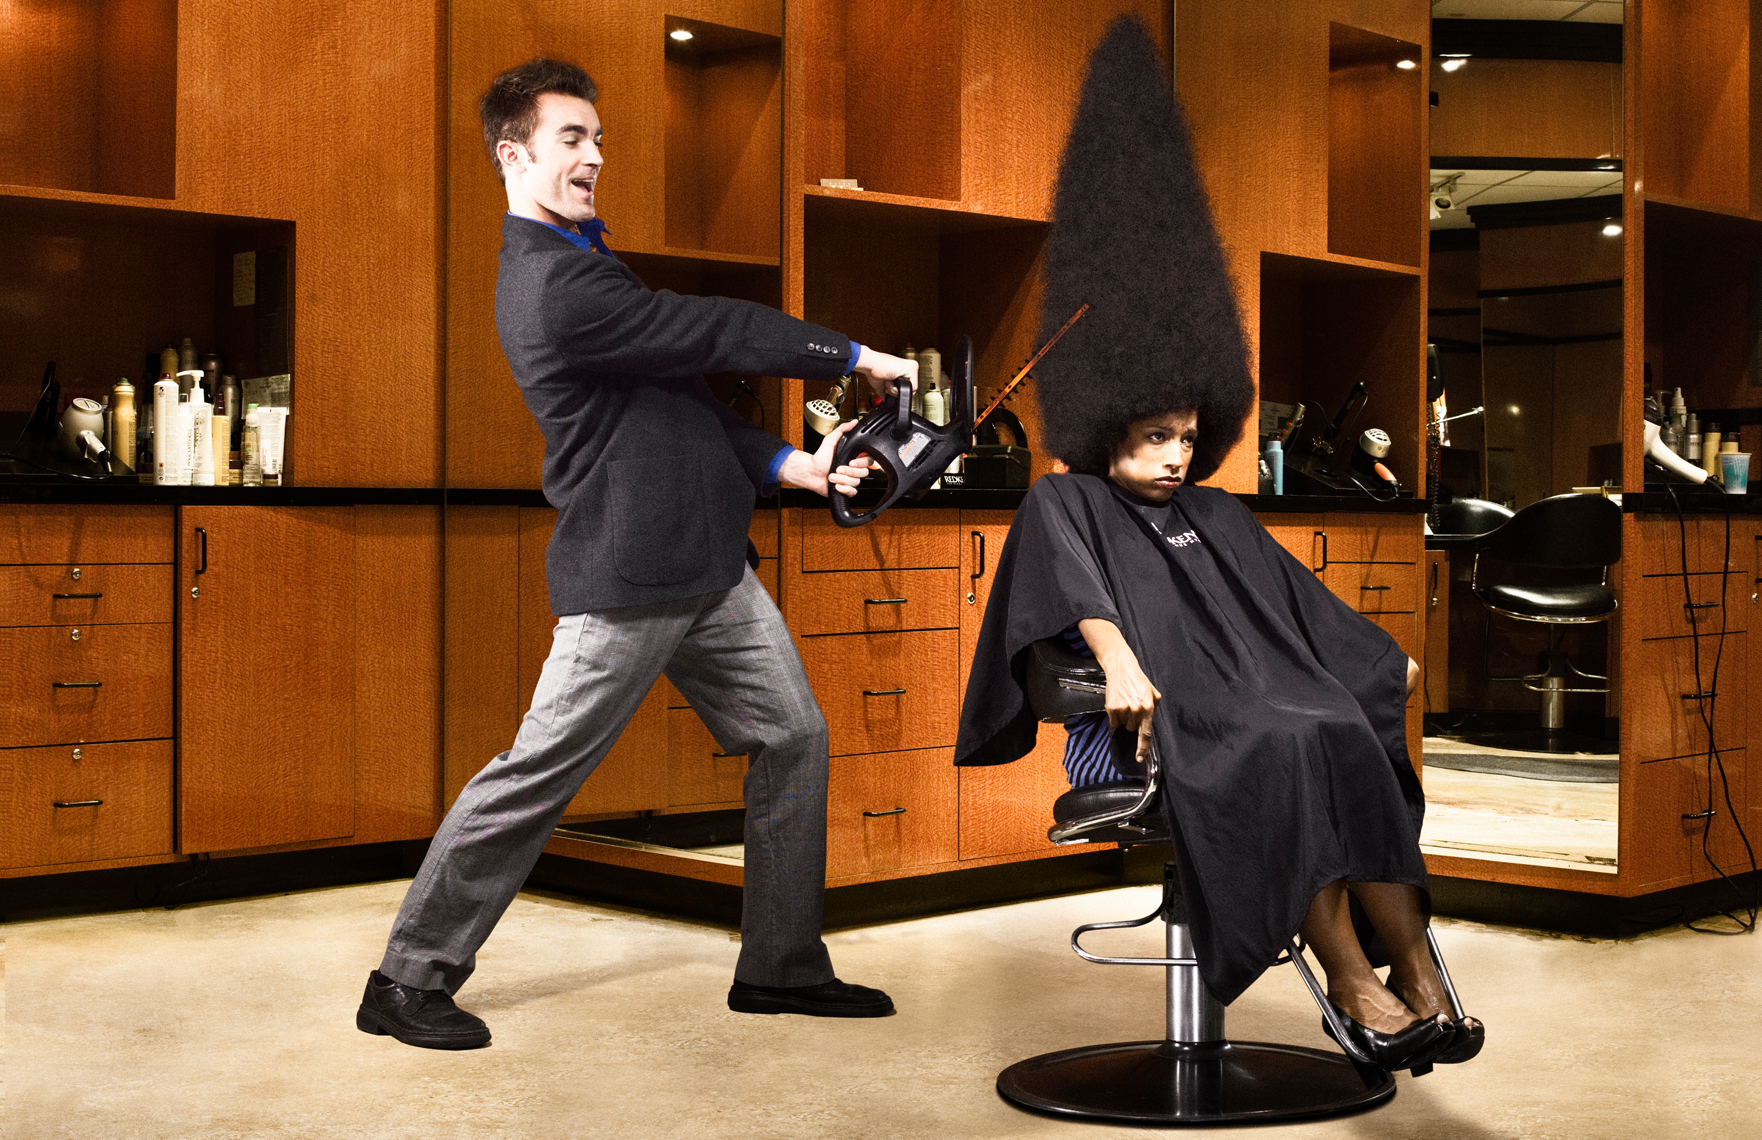 Hair-Salon-conceptua-humorl-photography